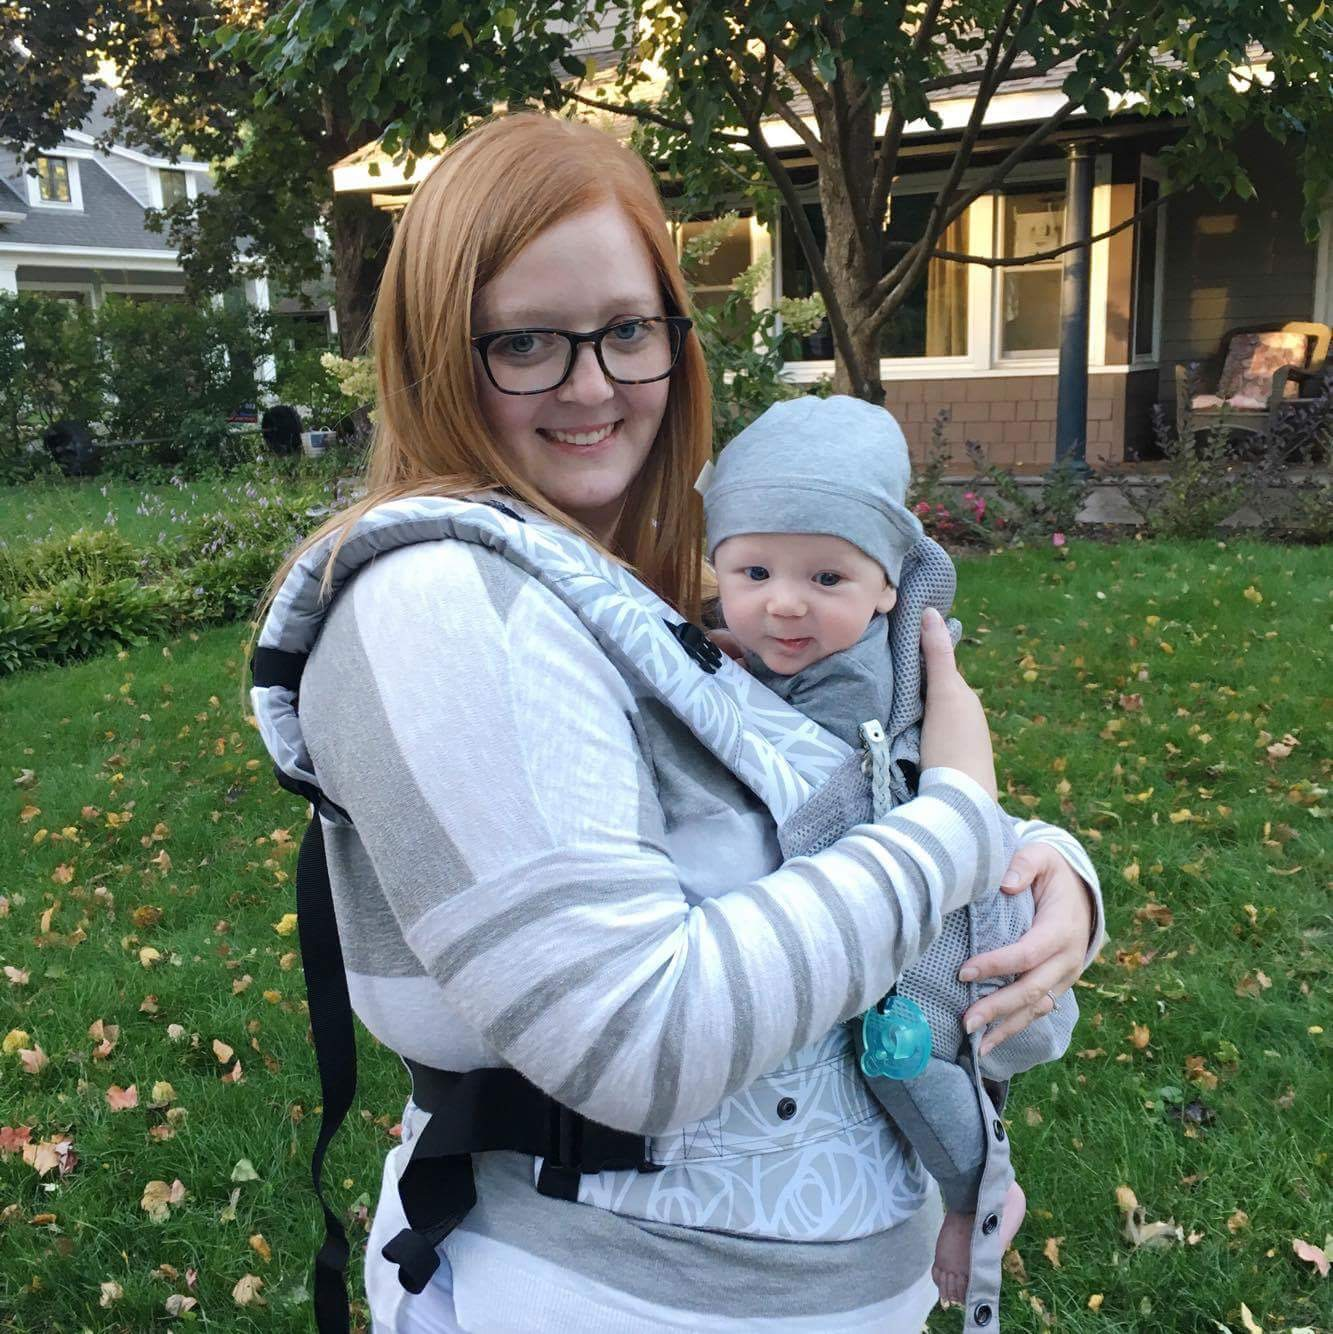 Amanda and Owen wearing the  LI´LLE´baby  Carrier.